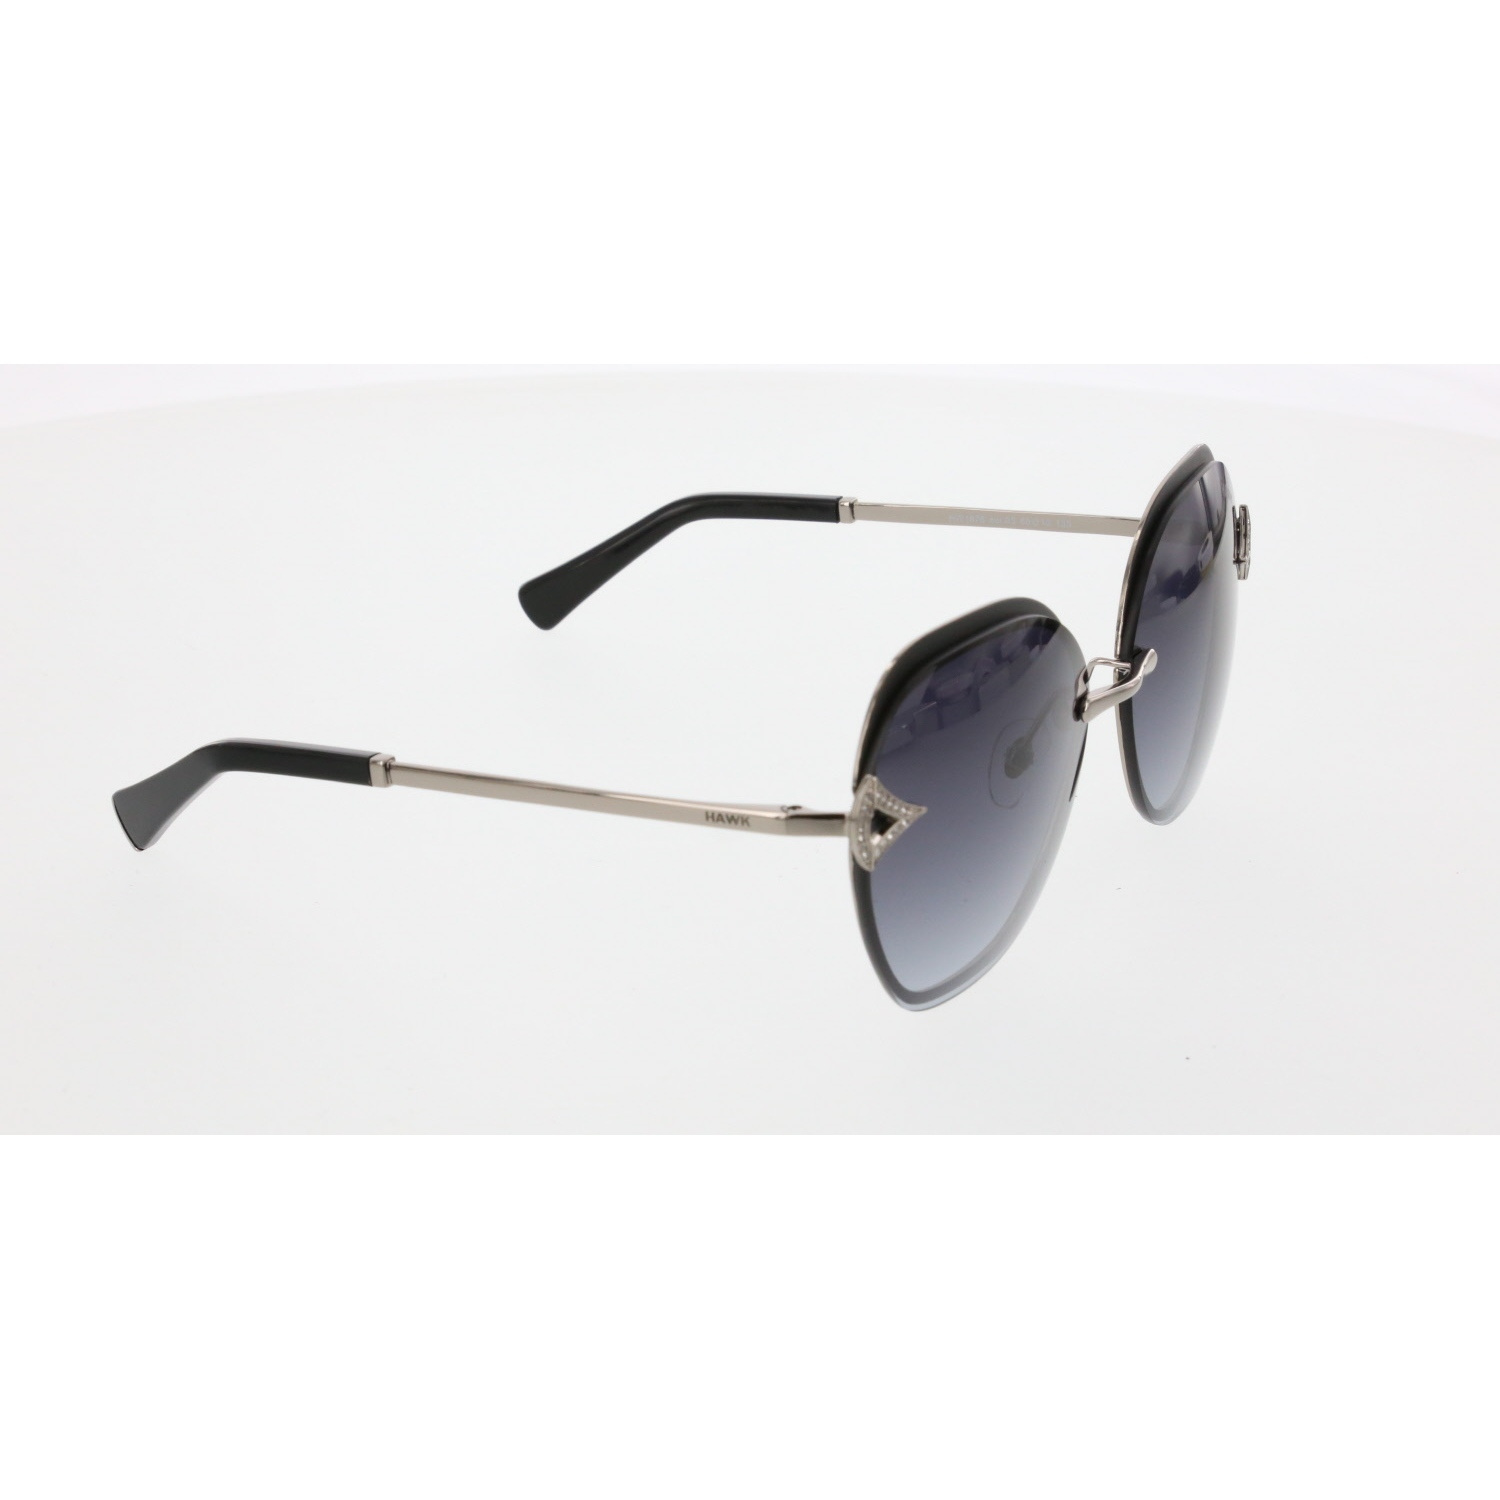 Women's sunglasses hw 1876 03 metal silver organic aval 60-15-135 hawk